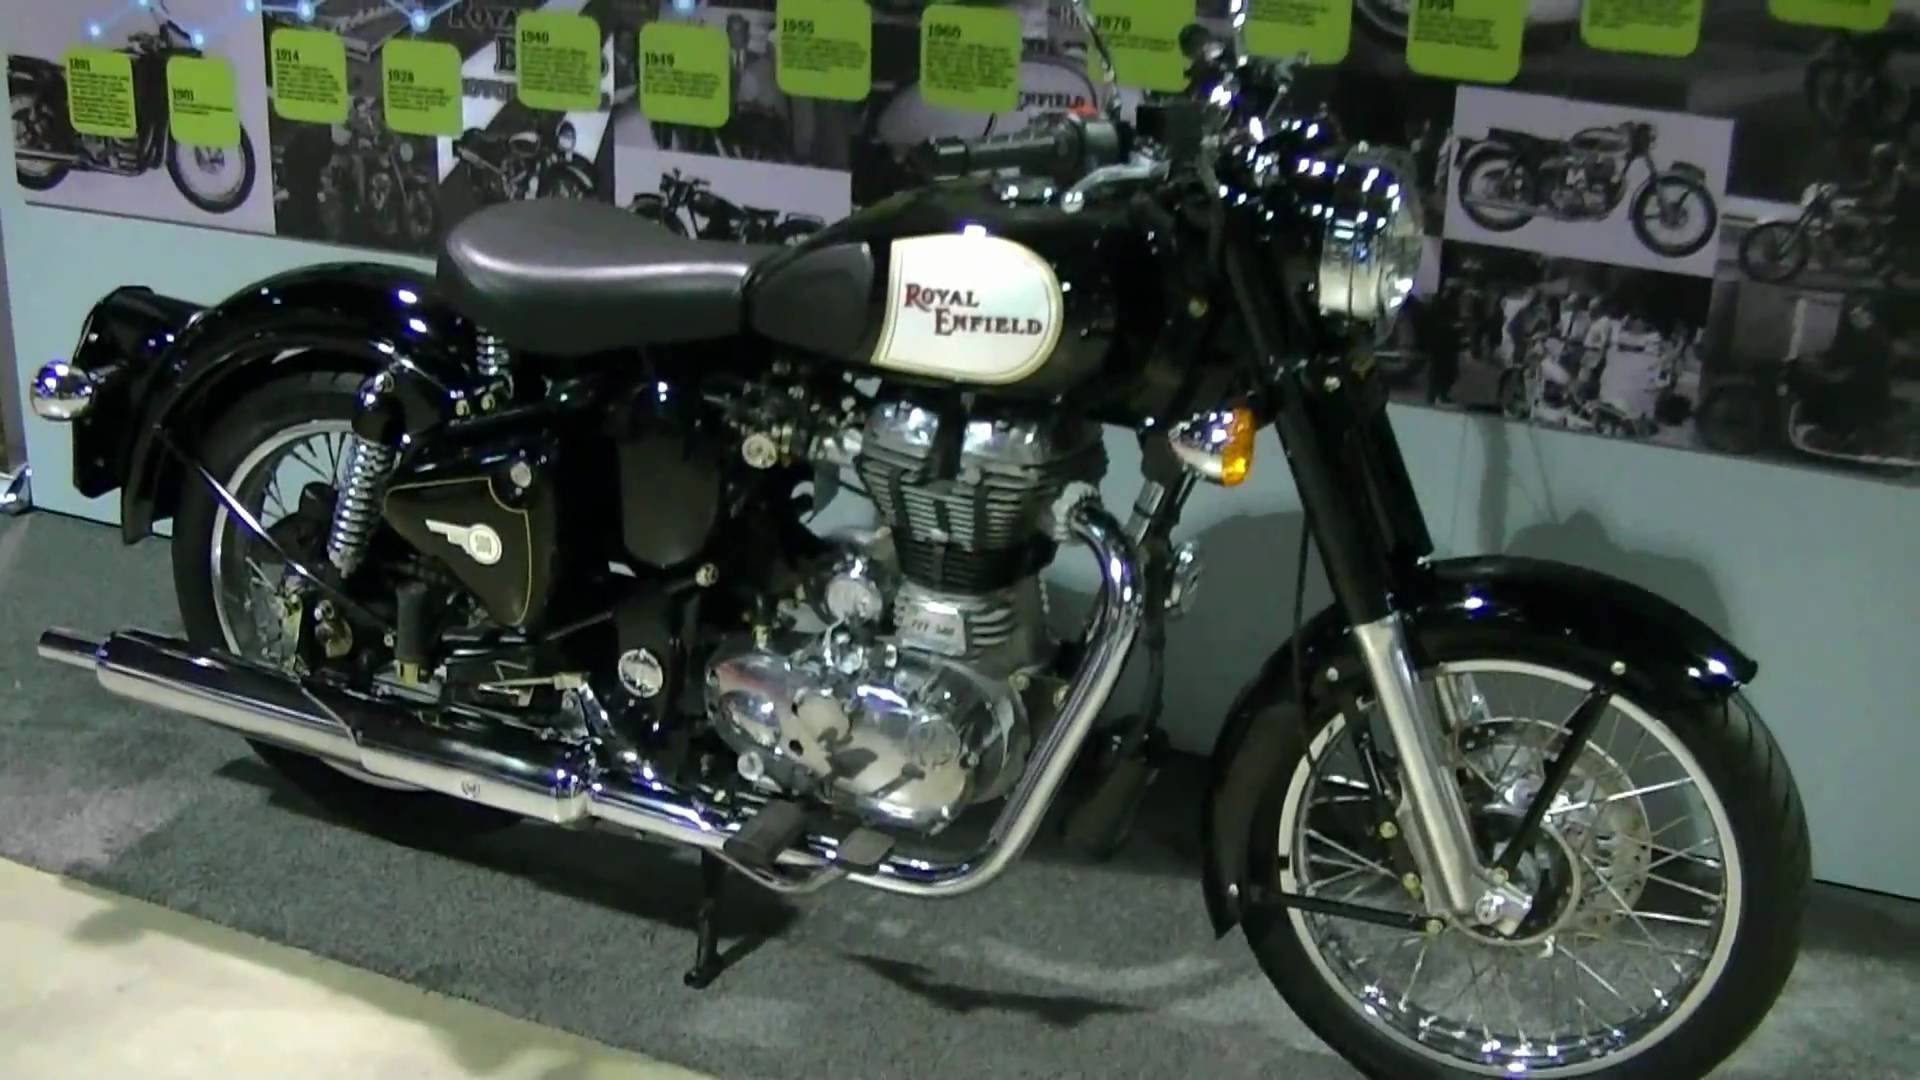 Royal Enfield Bullet 500 Army 2006 images #123603